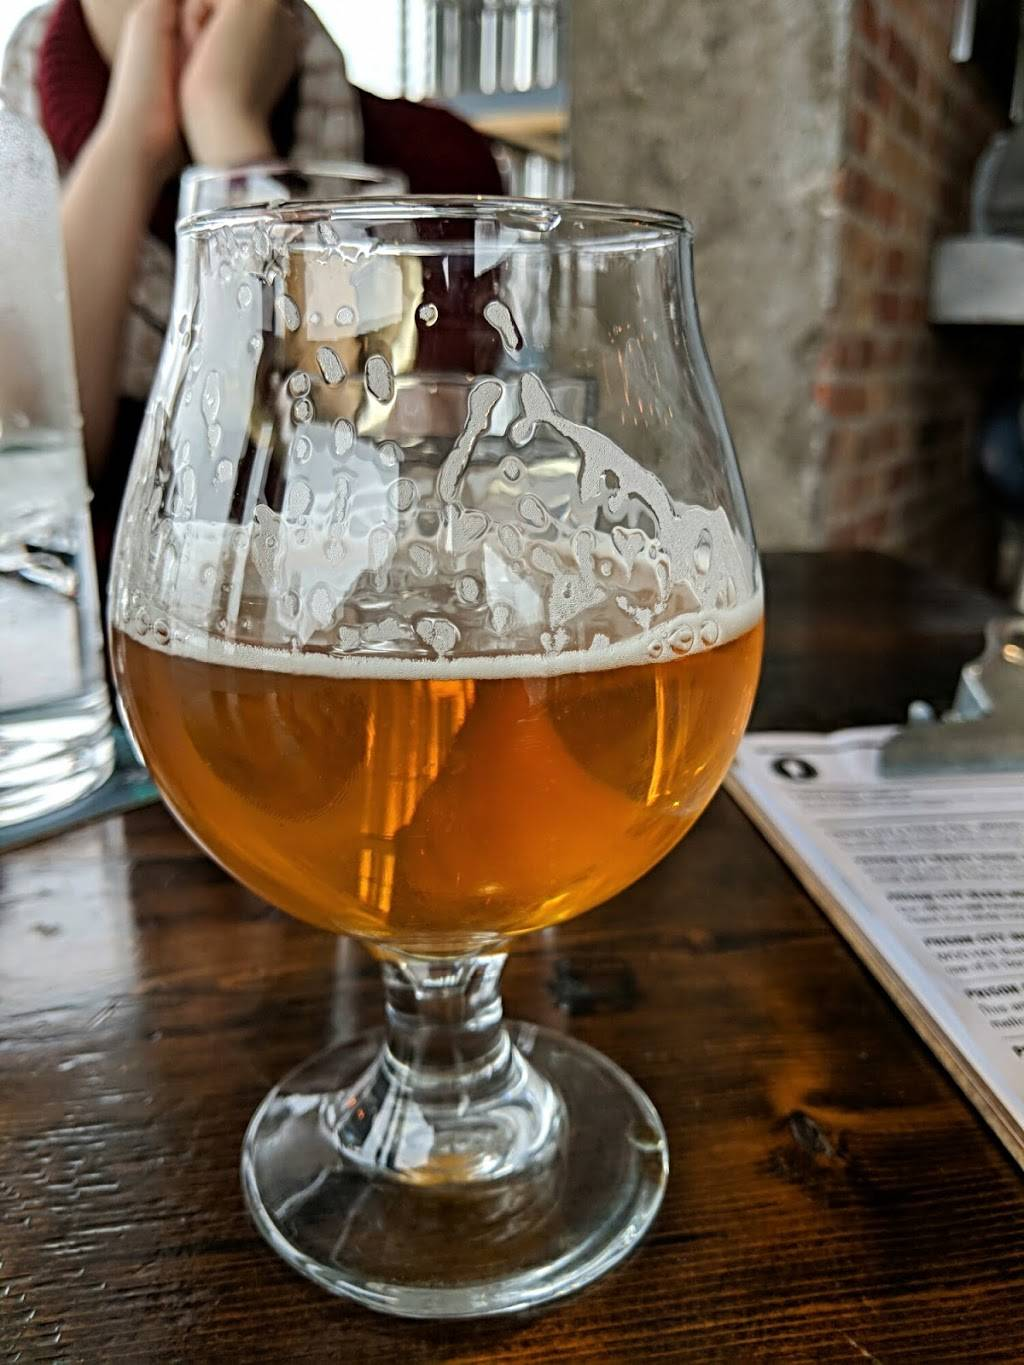 Prison City Pub and Brewery | restaurant | 28 State St, Auburn, NY 13021, USA | 3156041277 OR +1 315-604-1277